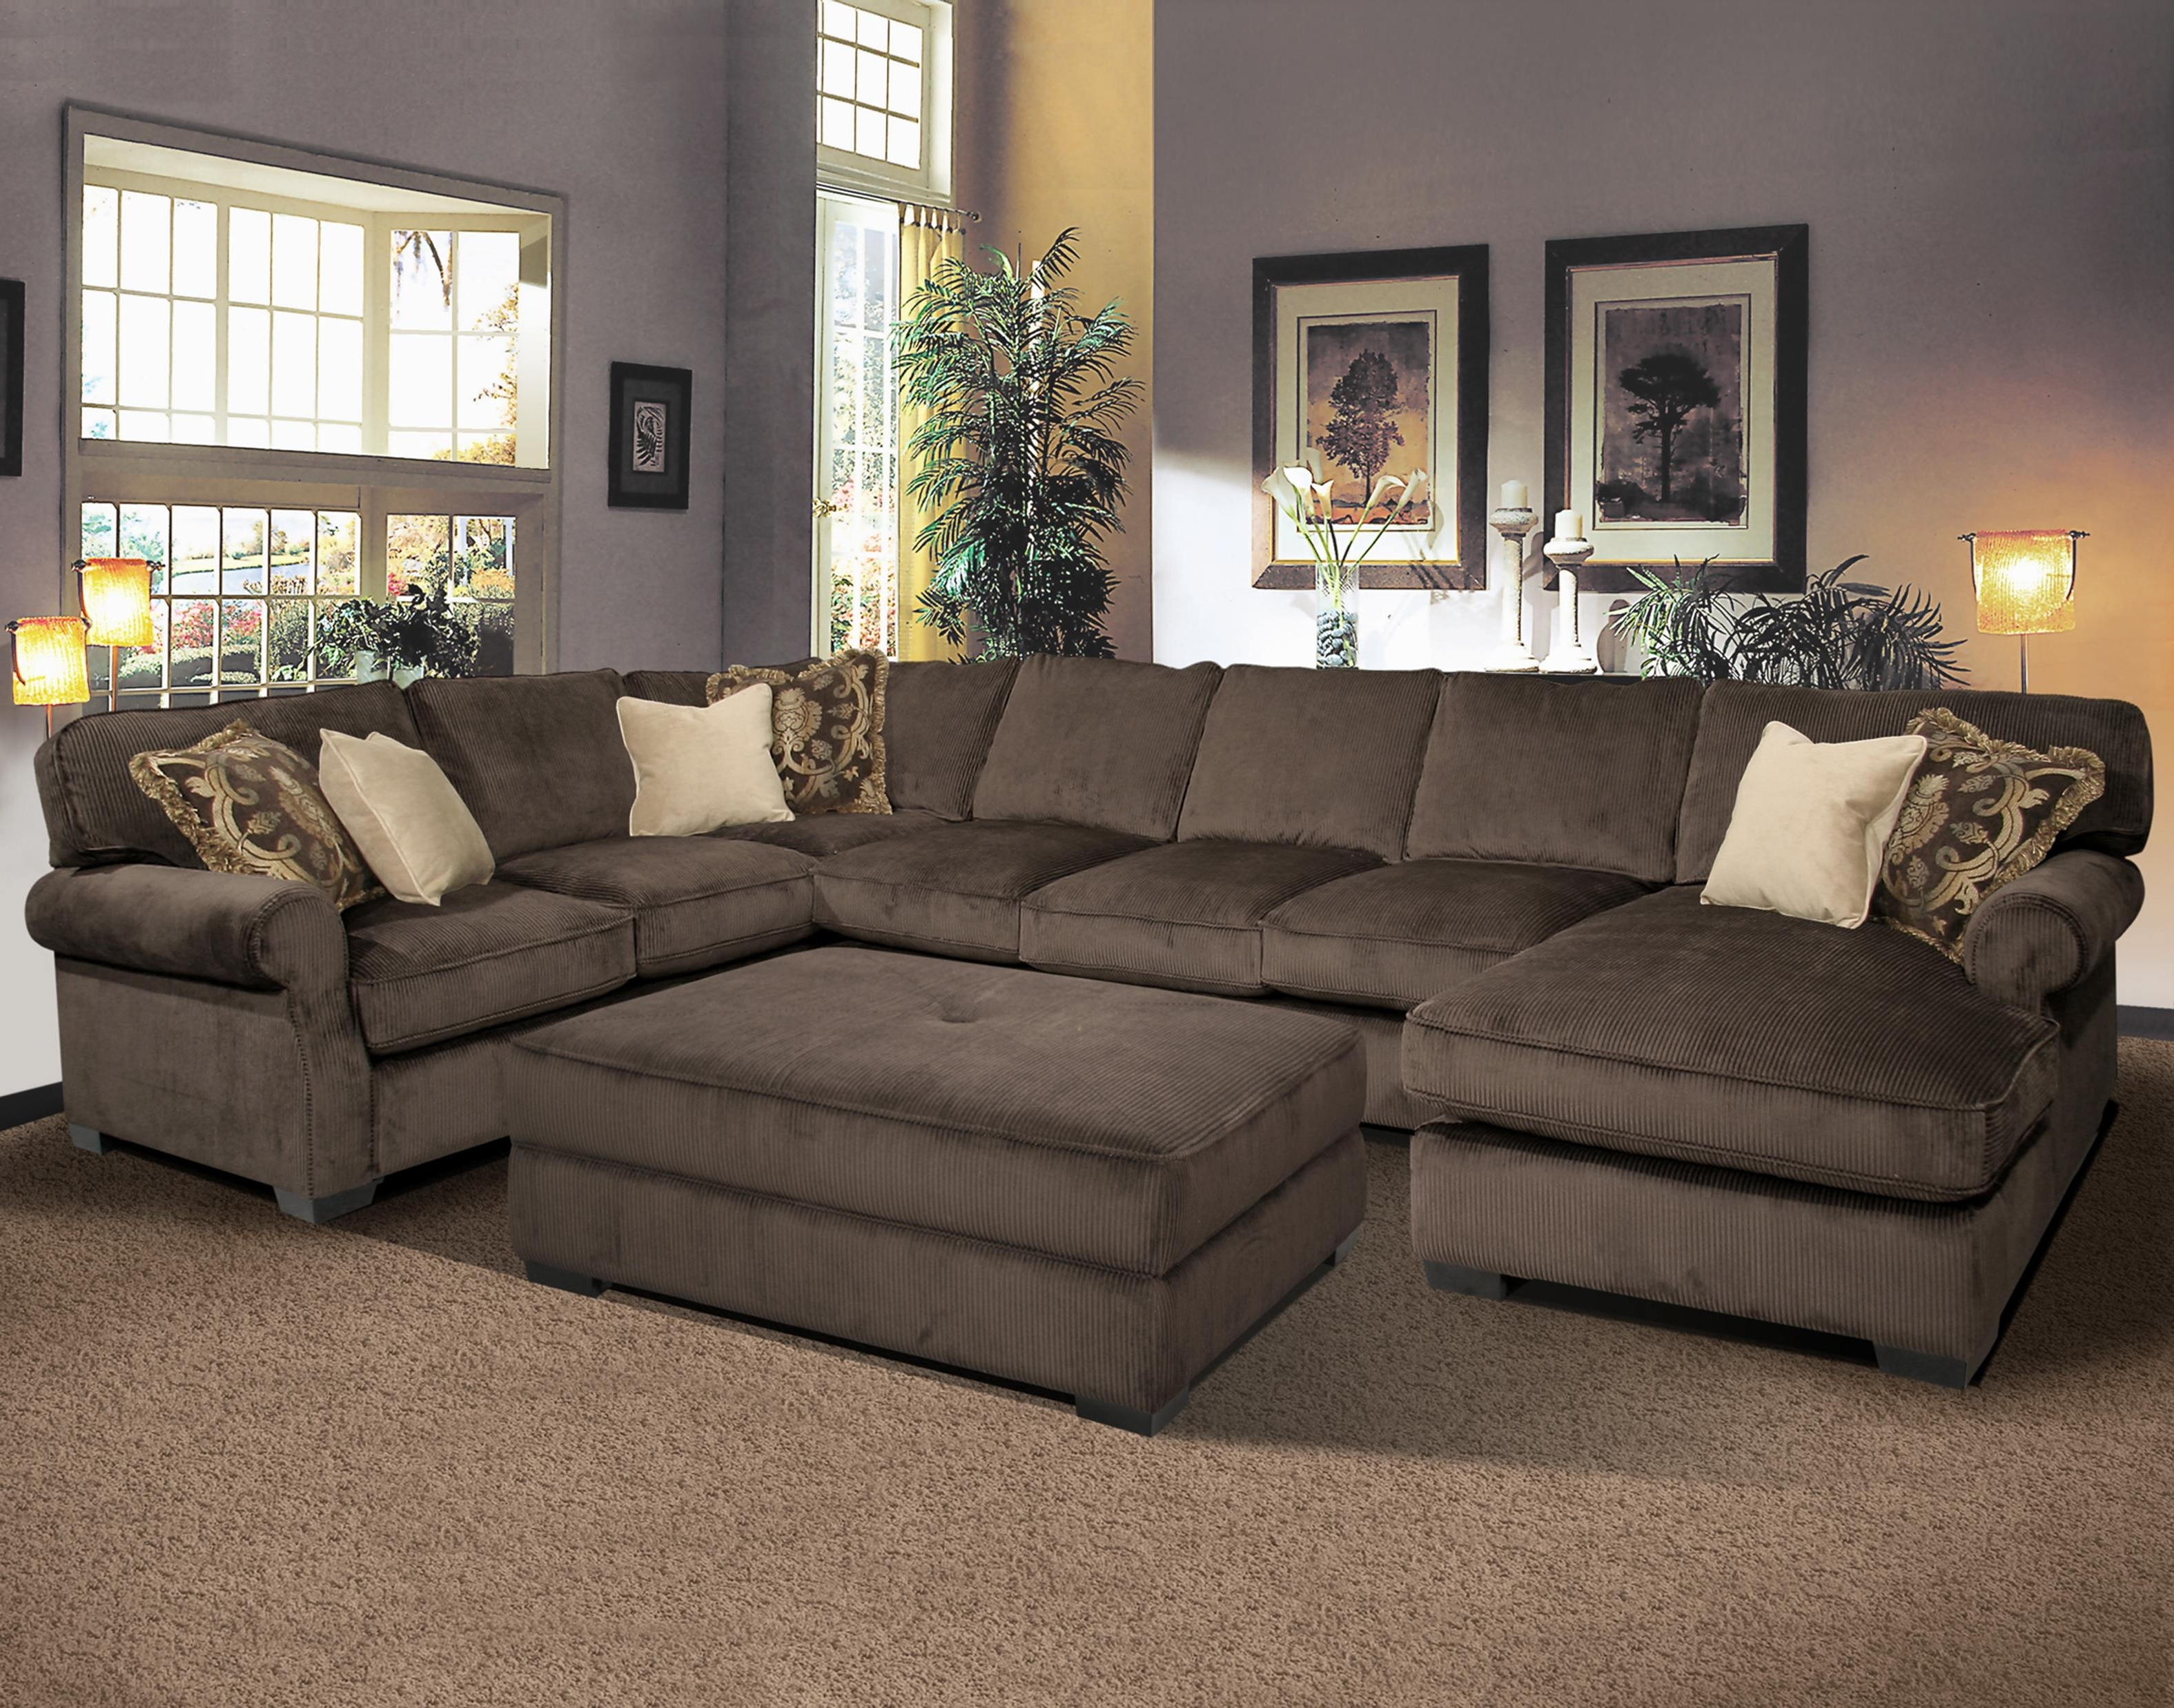 Well Known Sofa : Sectional Slipcovers Long Couches For Sale Small L Couch With Regard To On Sale Sectional Sofas (View 6 of 20)